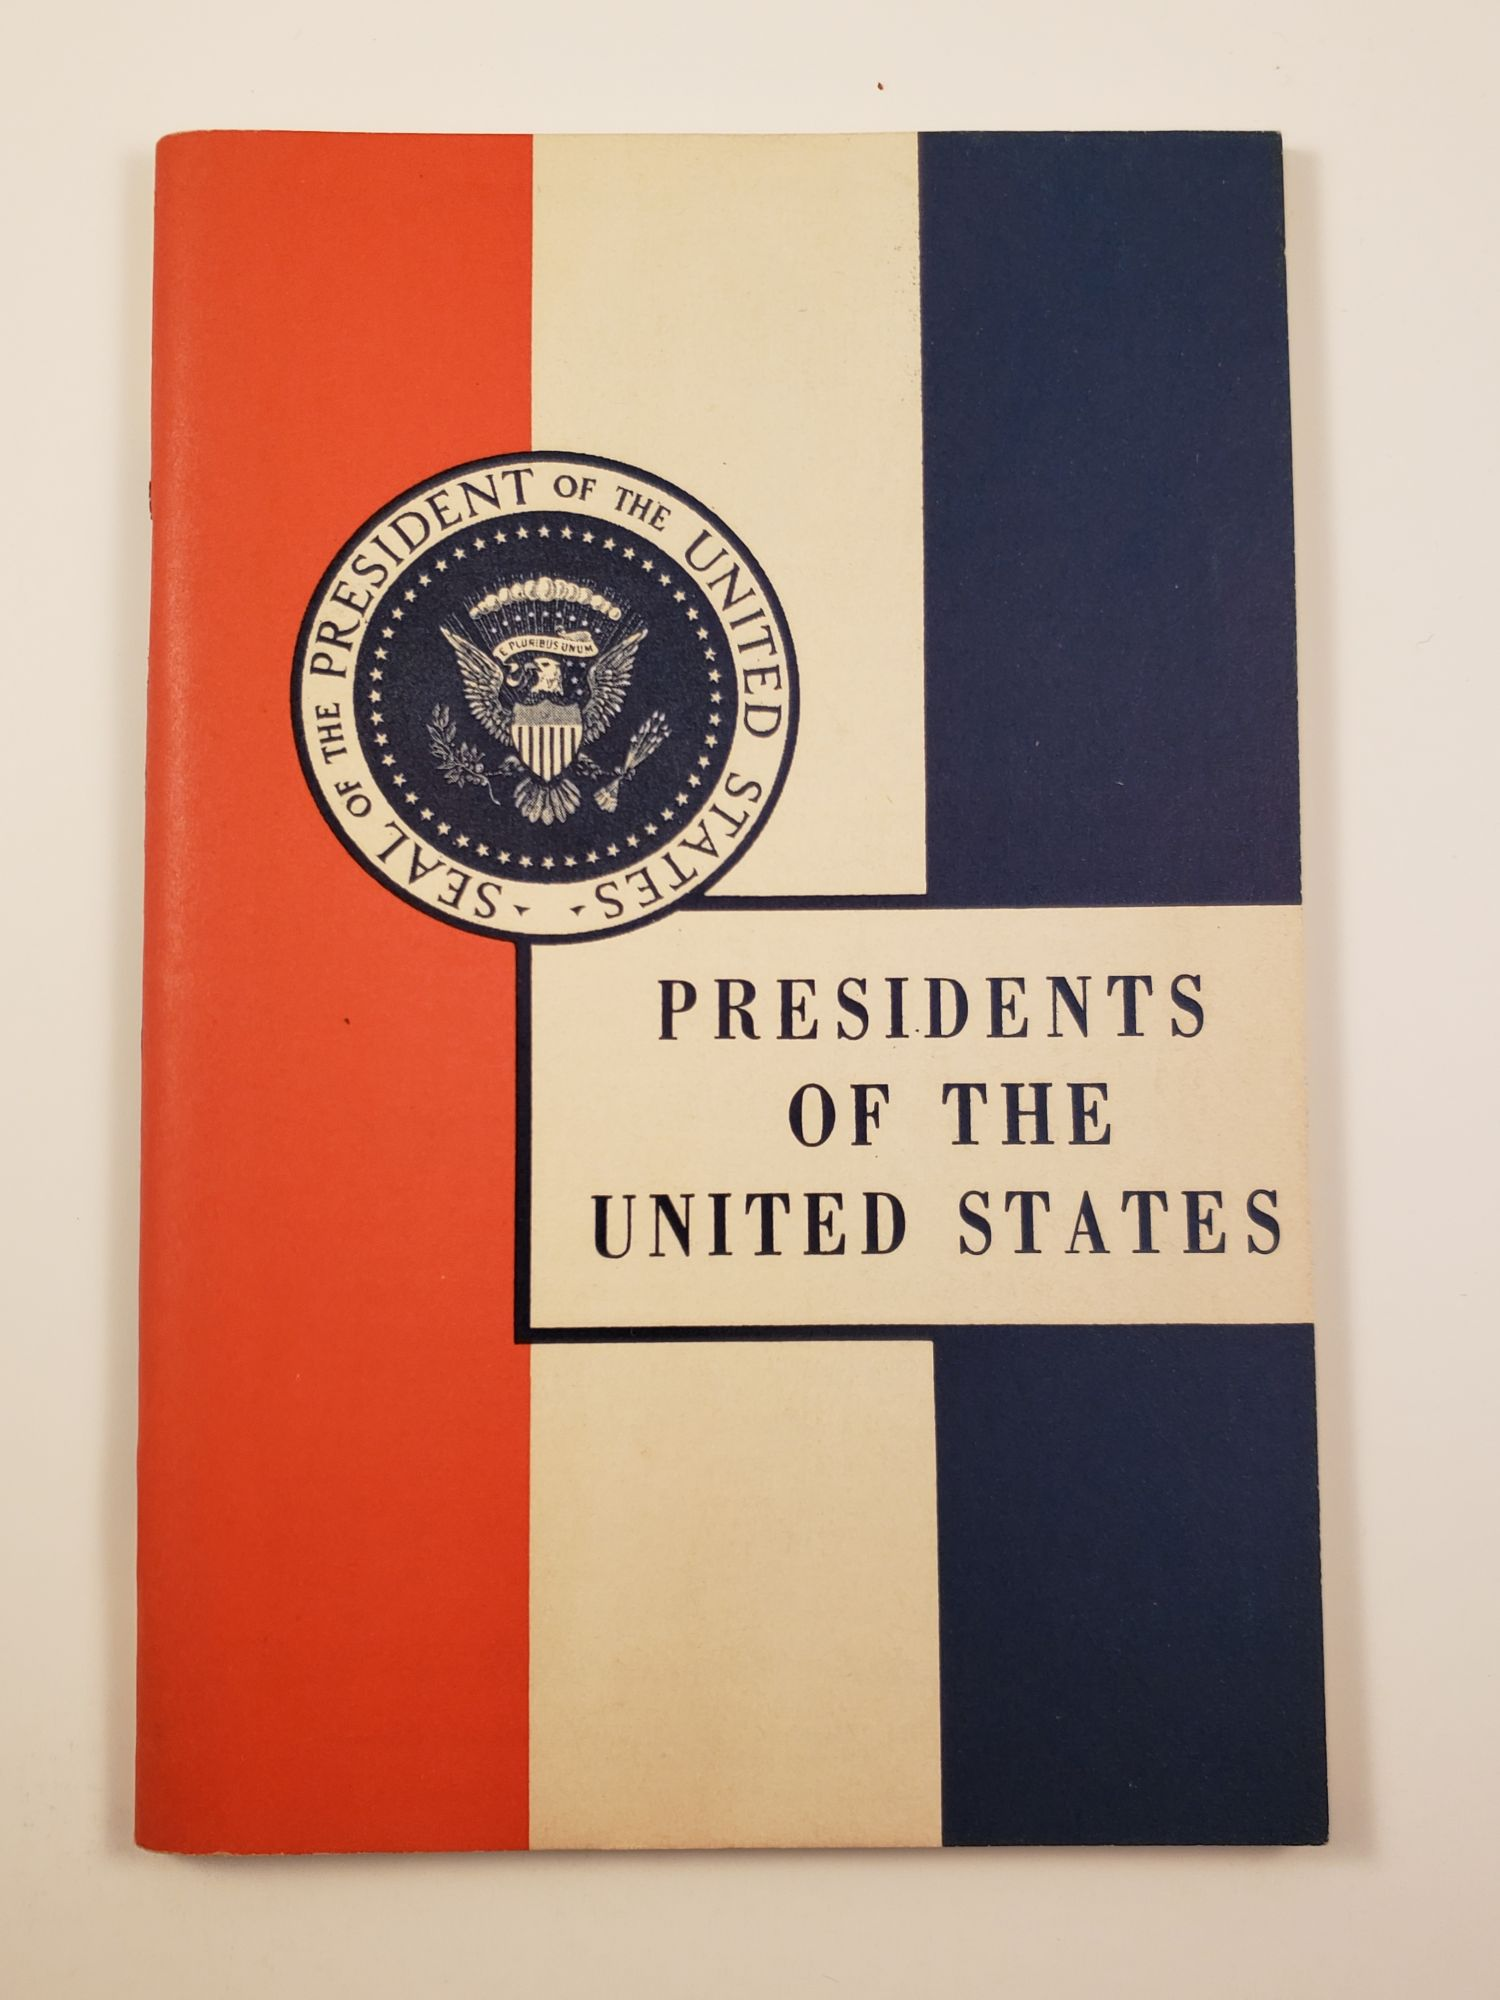 Presidents of the United States | John Hancock Booklets